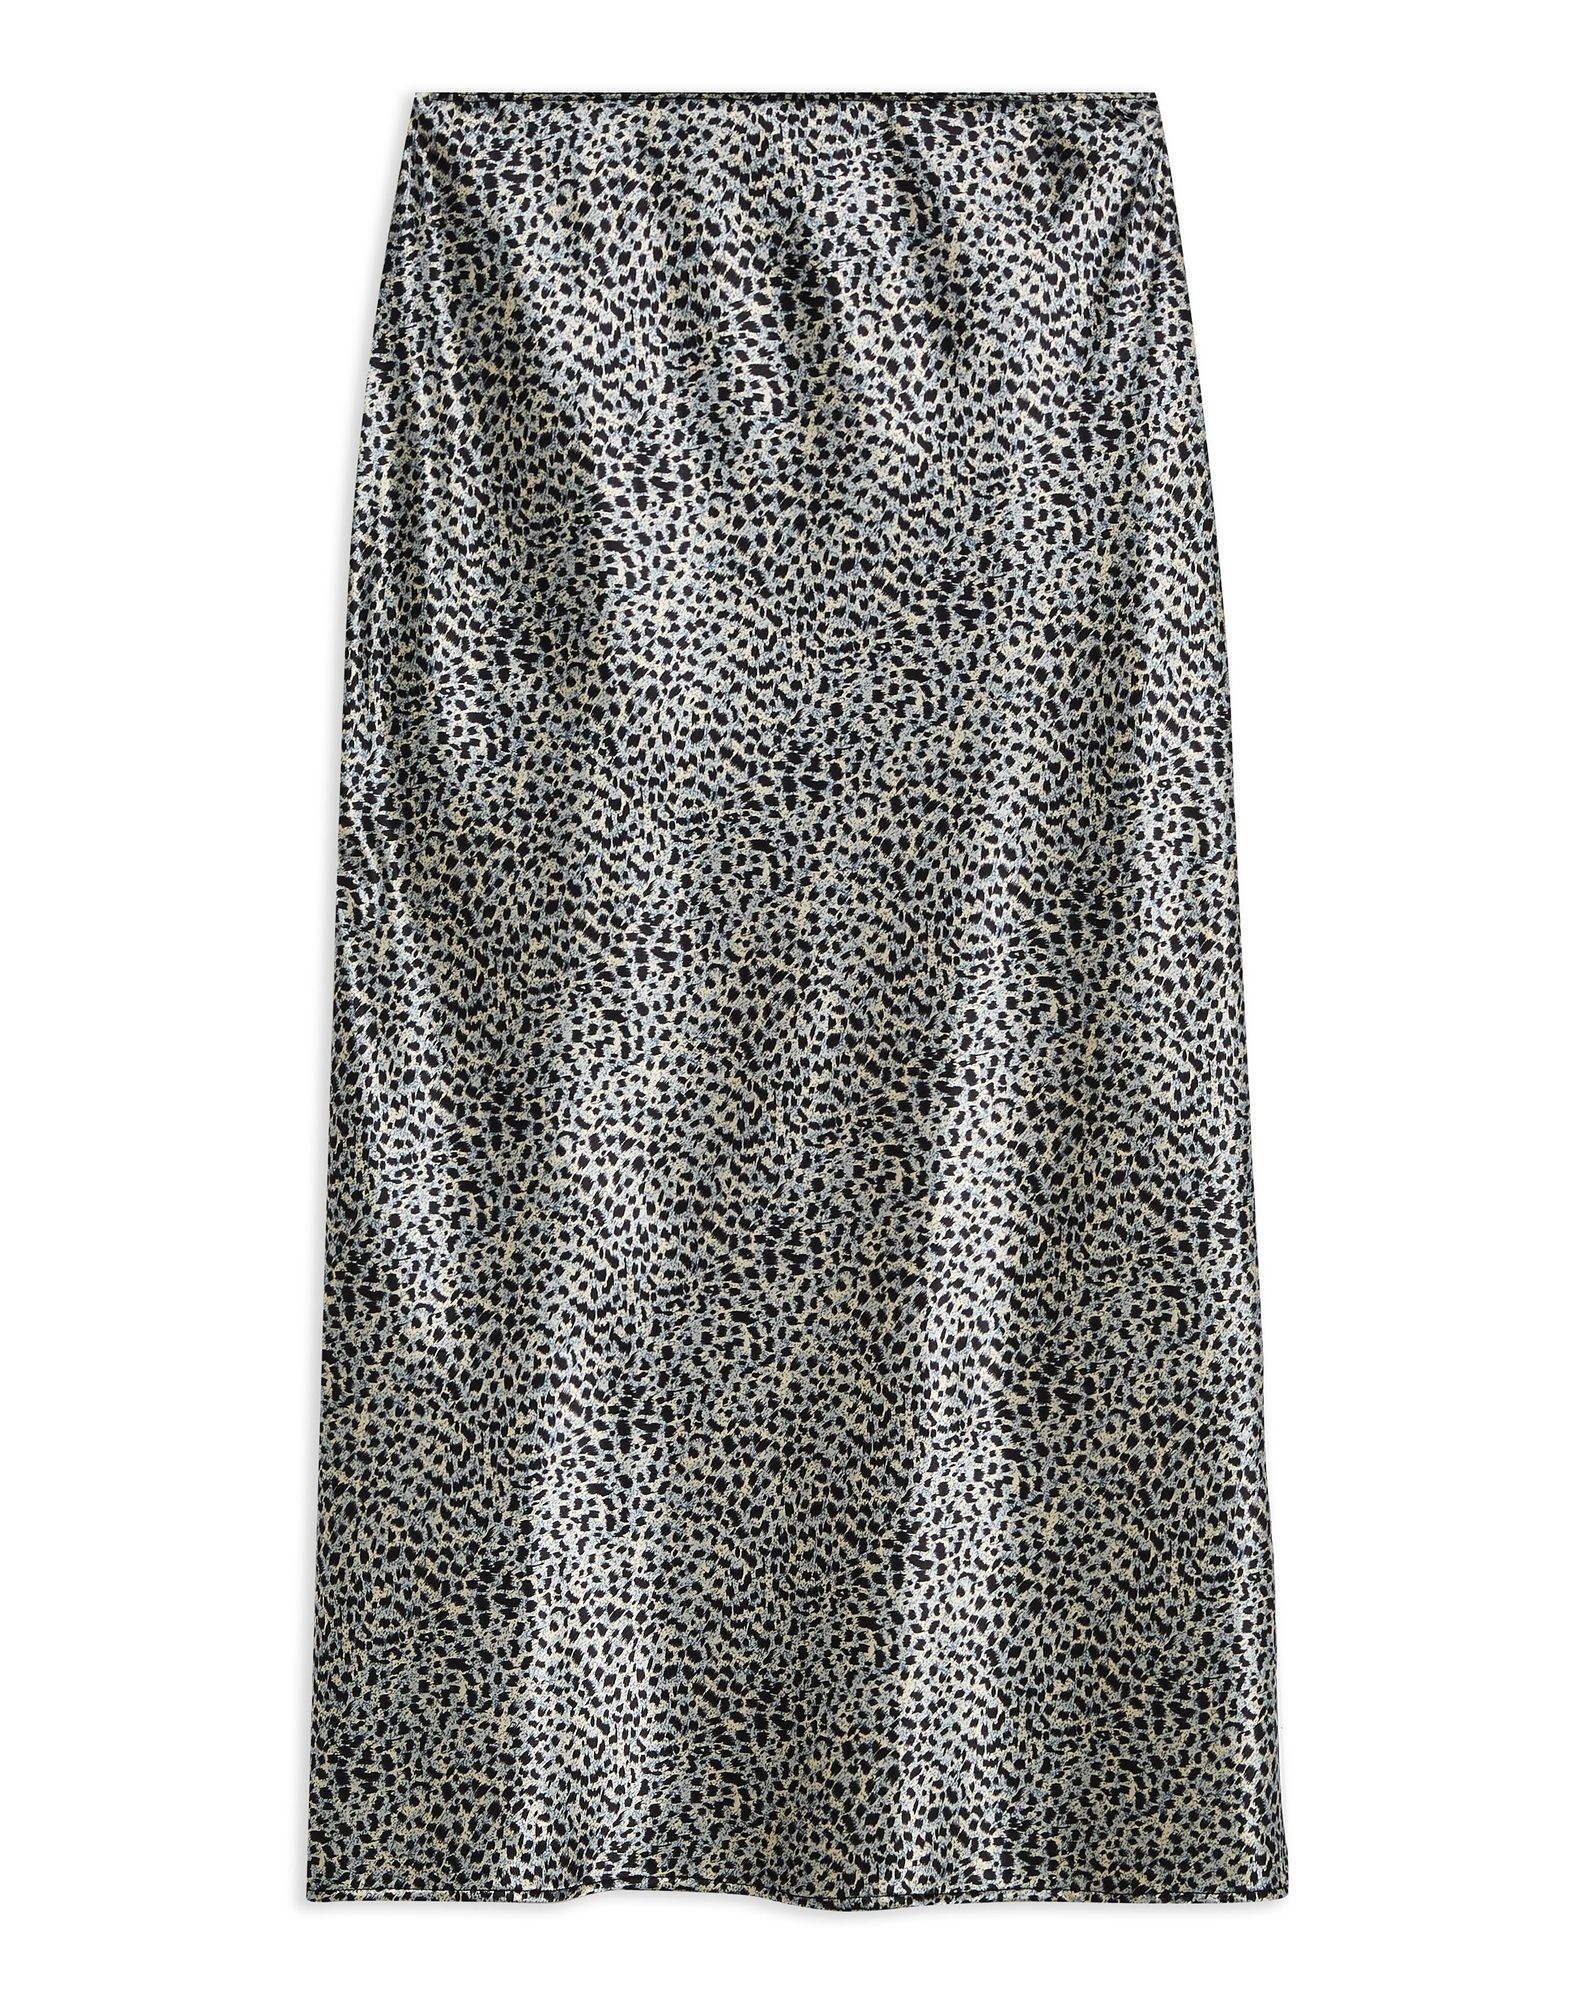 Gonna Longuette Topshop damen - 35412233AO